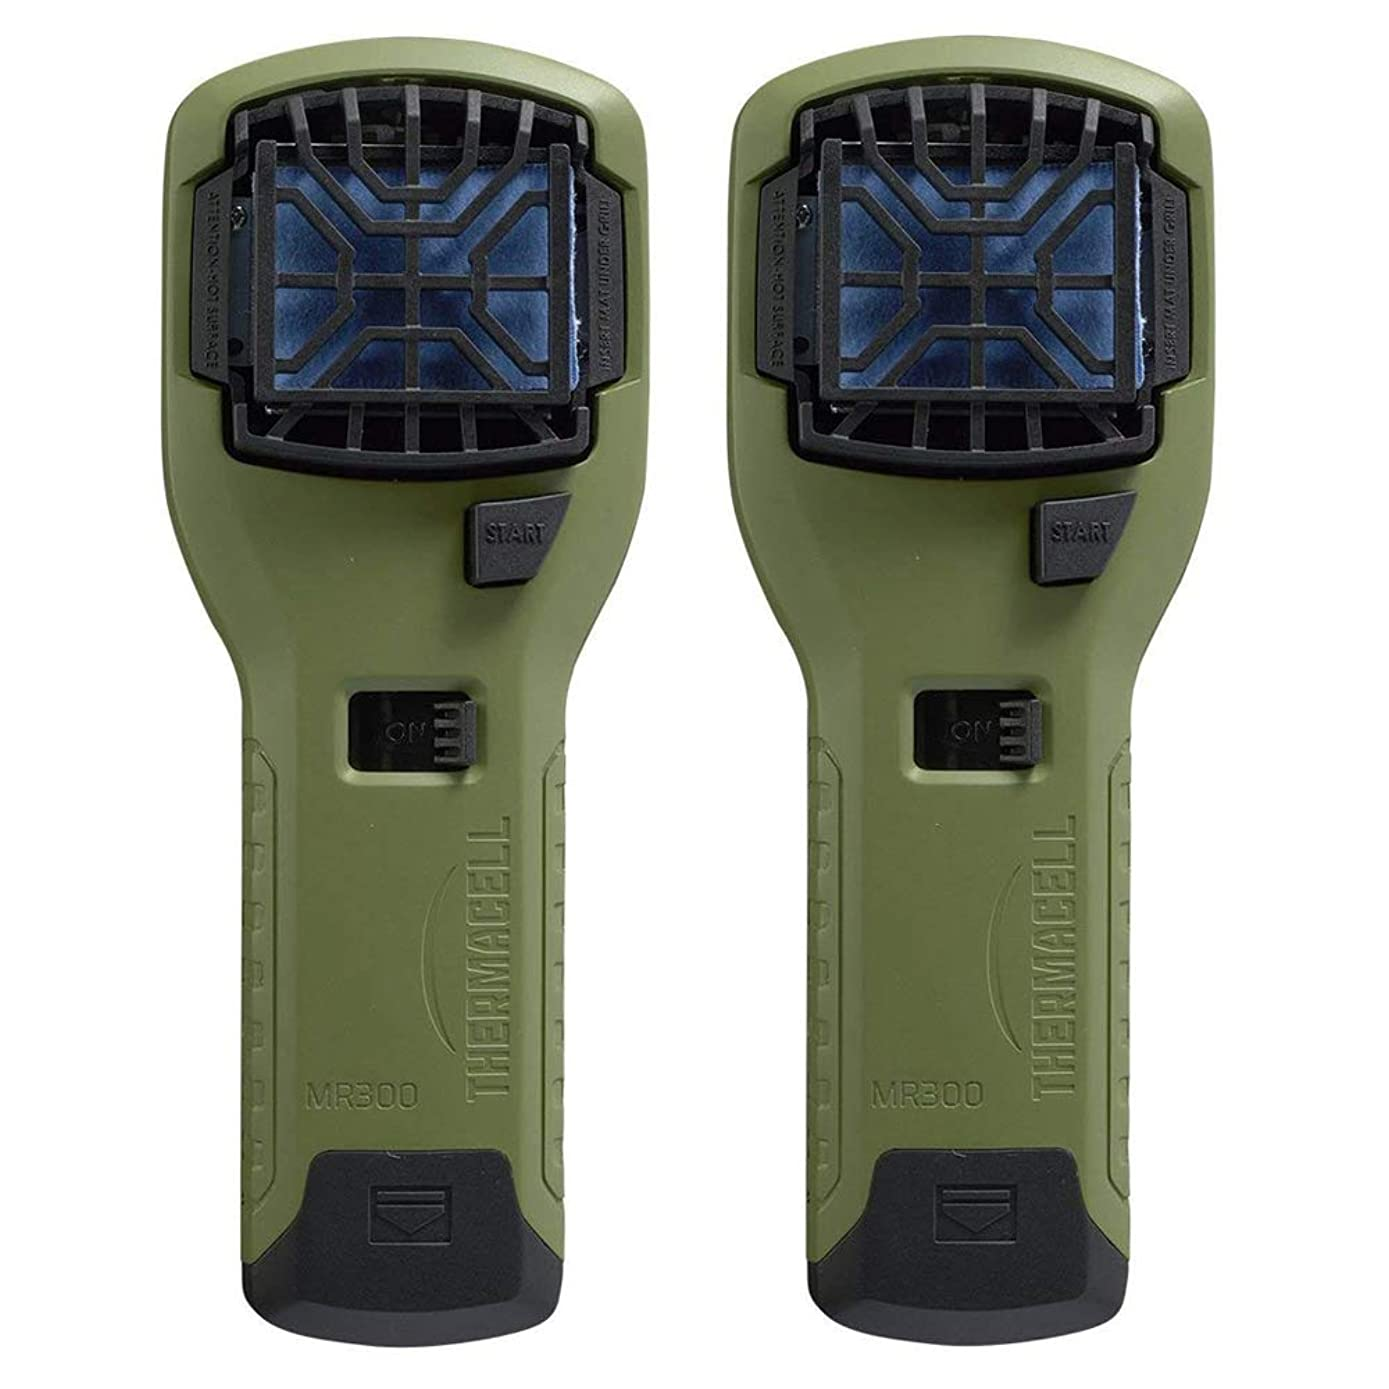 Thermacell Mosquito Repellent Outdoor & Camping Repeller Device (Olive), 2-Pack Kit with 6 Mats + 2 Cartridges